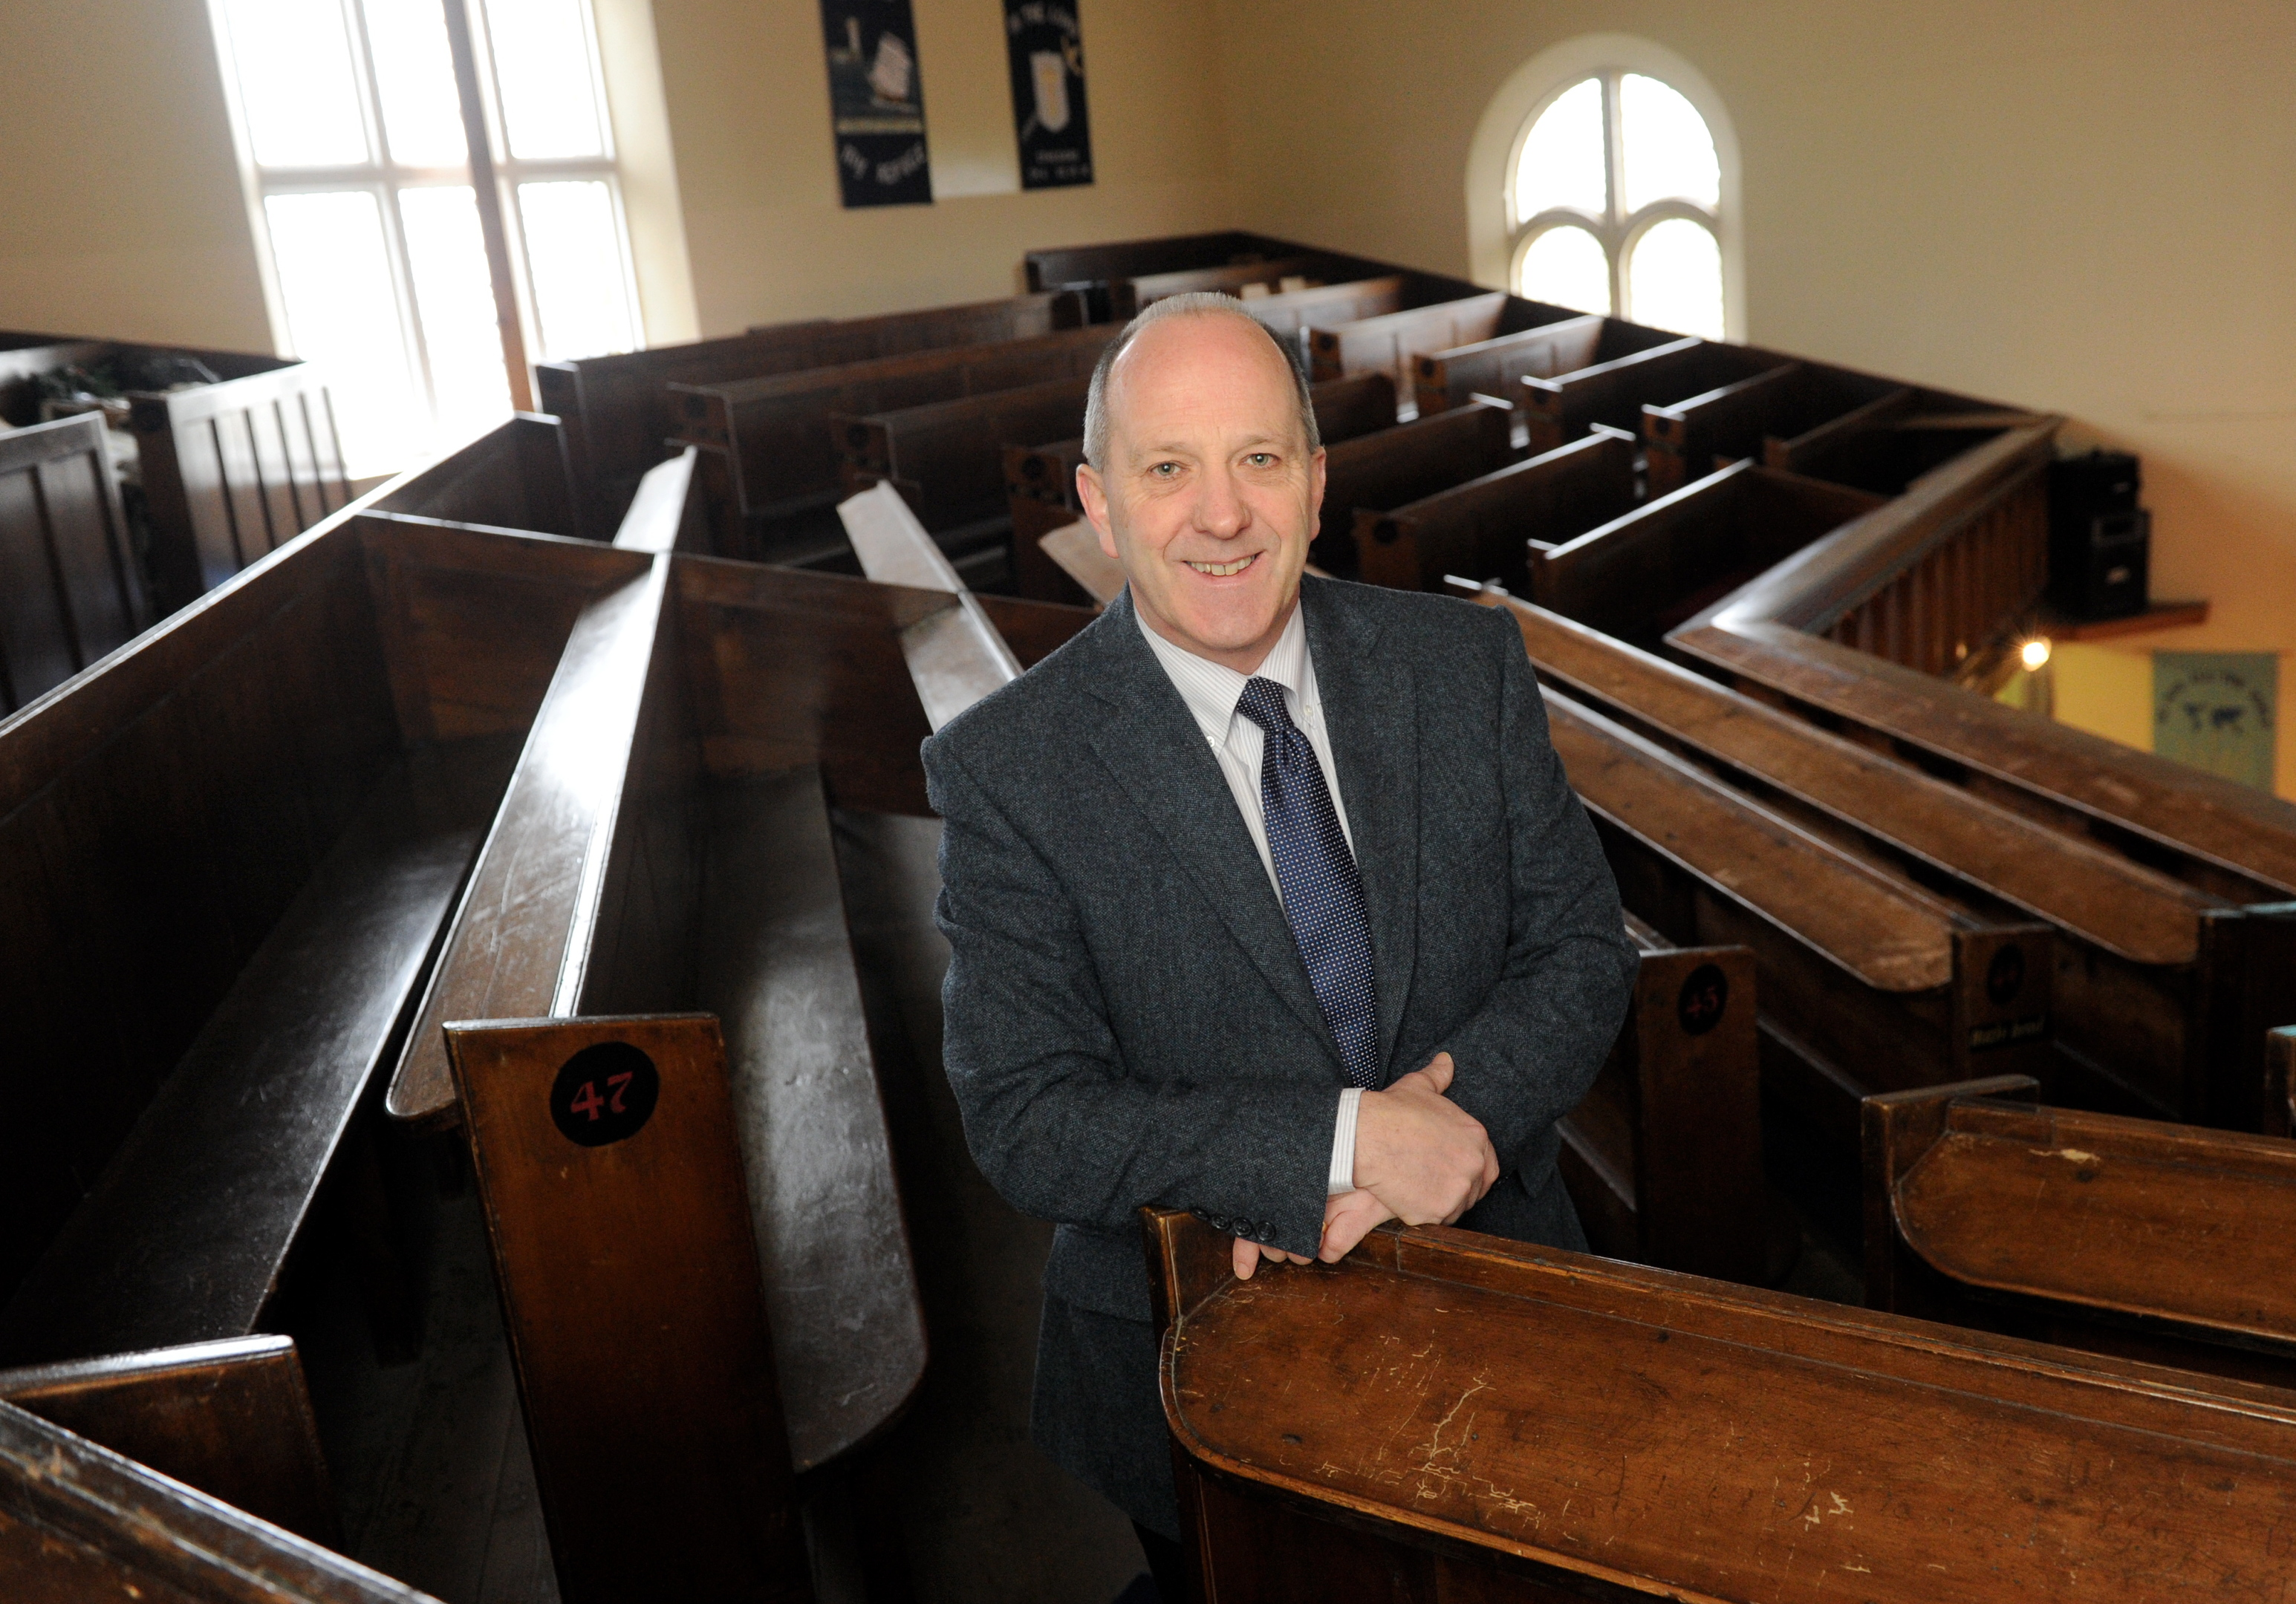 Welcome:  Reverend Hugh Wallace came up with the idea to invite the refugees.